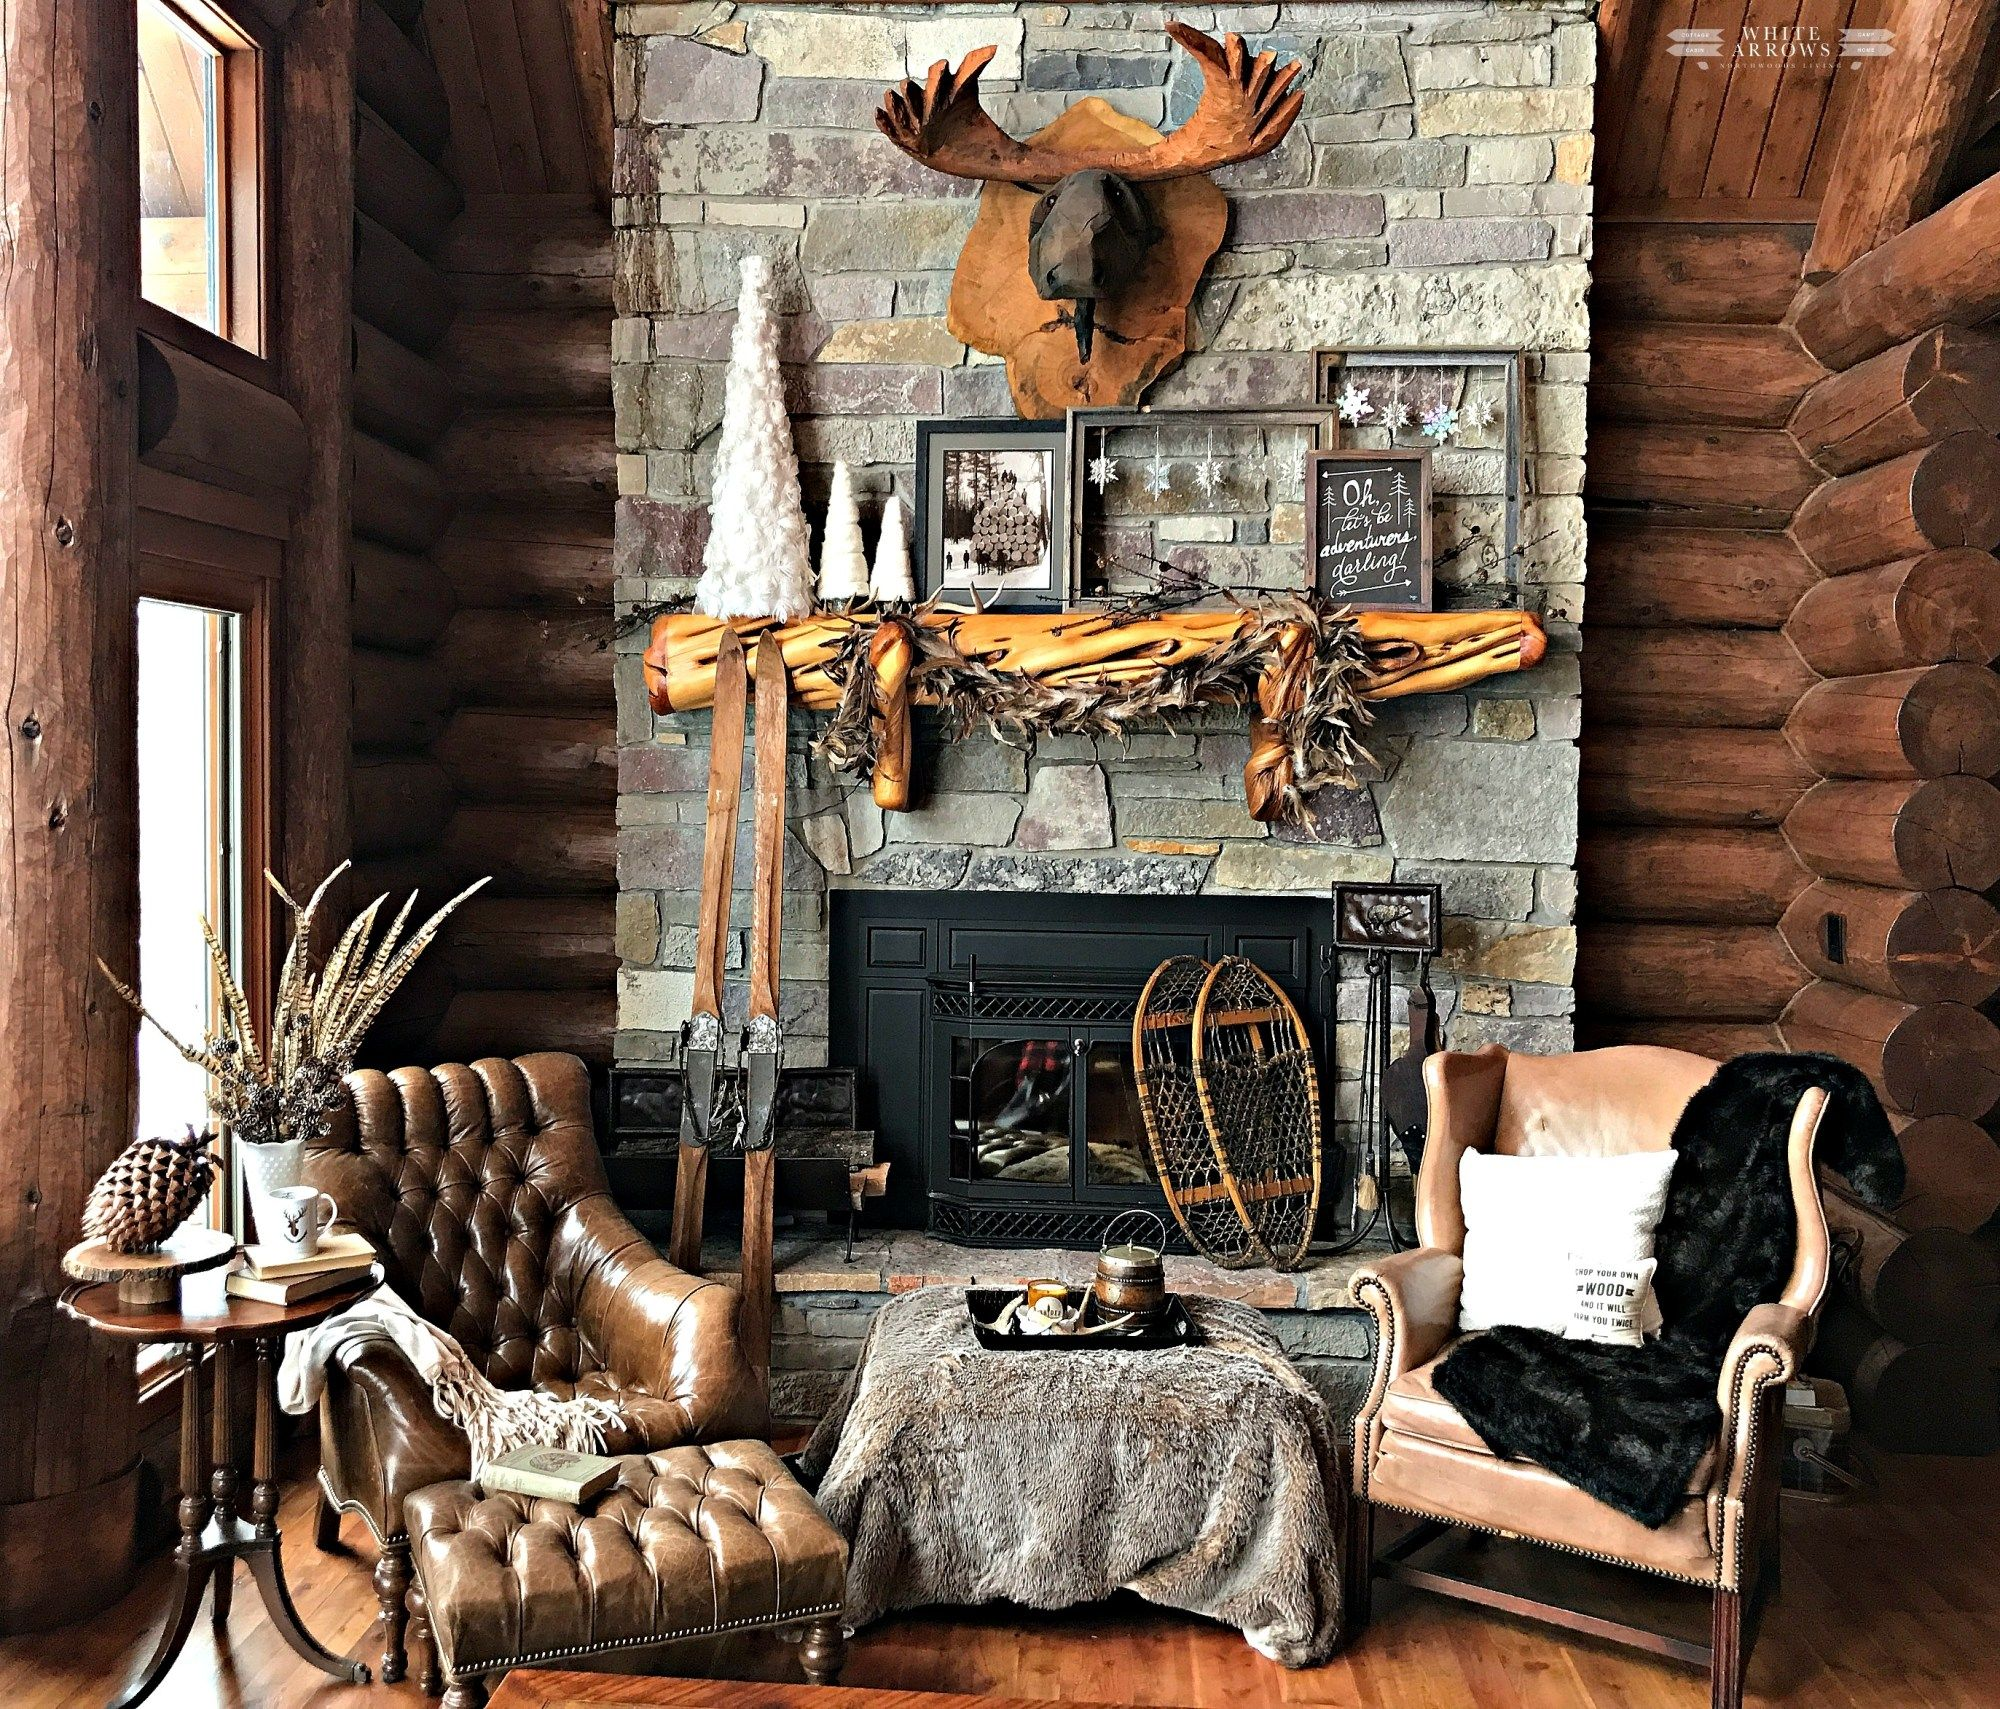 Winter neutral decor winter decor neutral decor cabin cabin decor cabin style log cabin